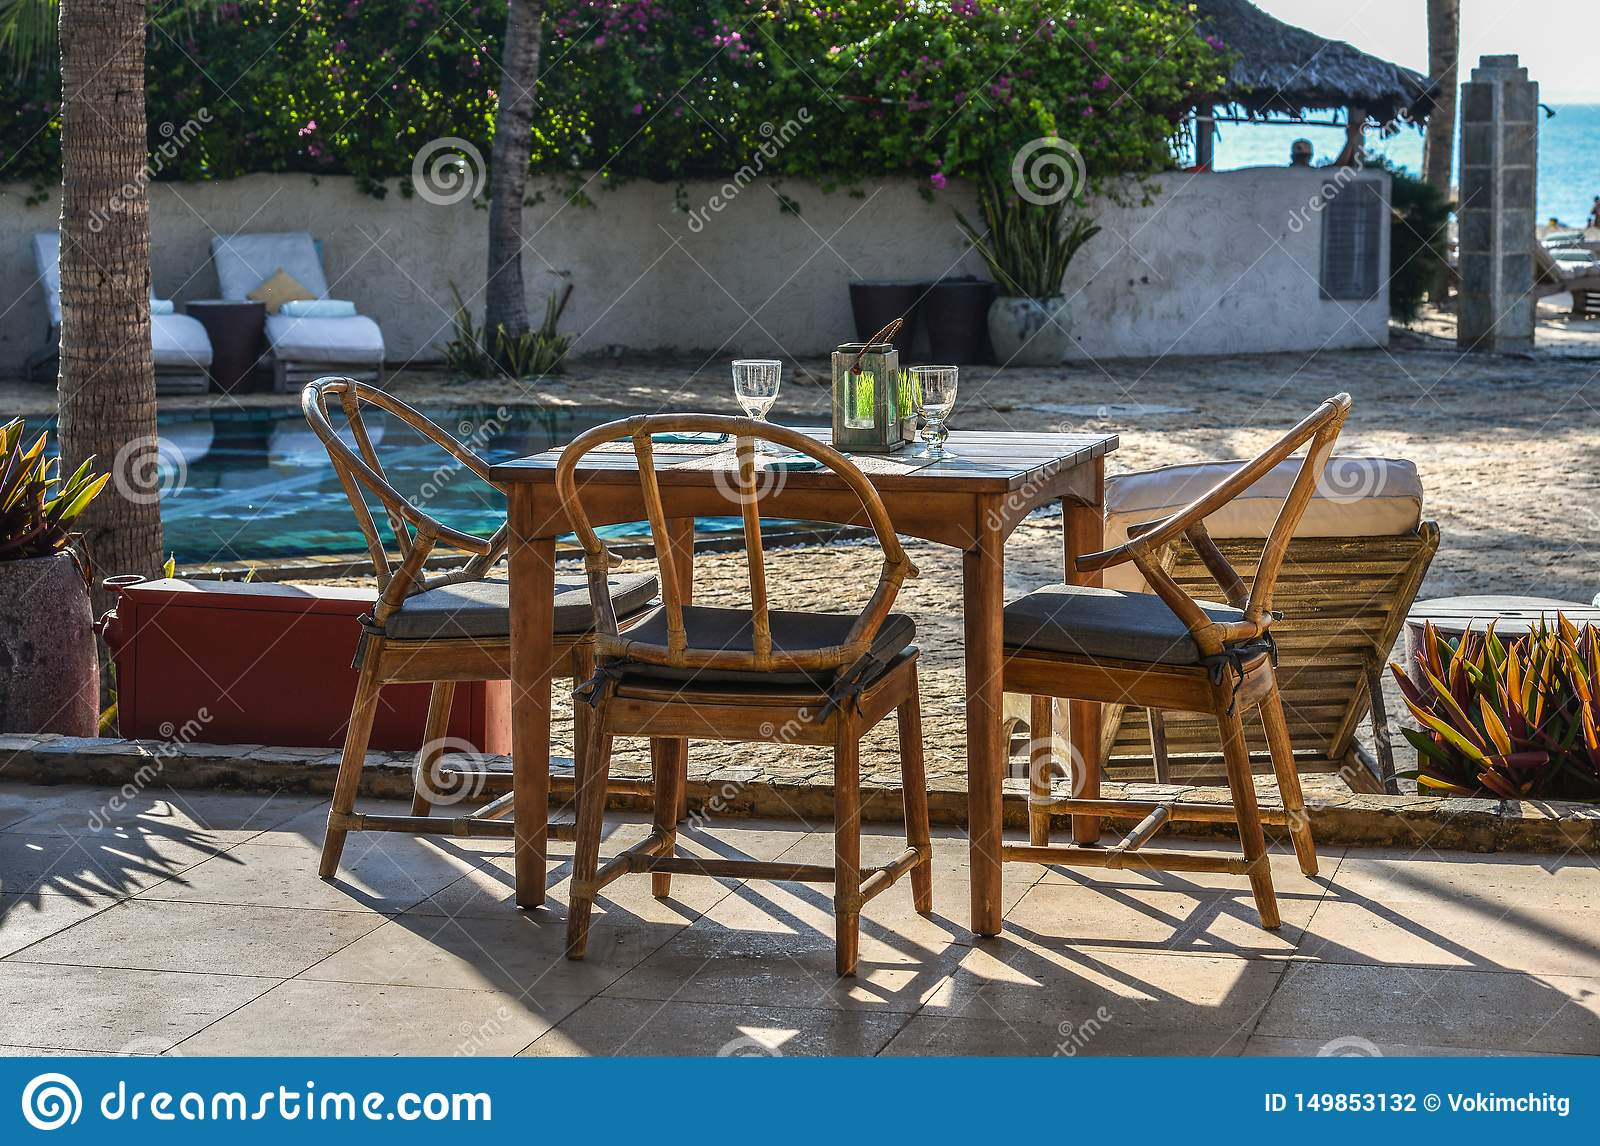 Outdoor Furniture In The Luxury Restaurant Stock Photo Image Of Decoration Beautiful 149853132